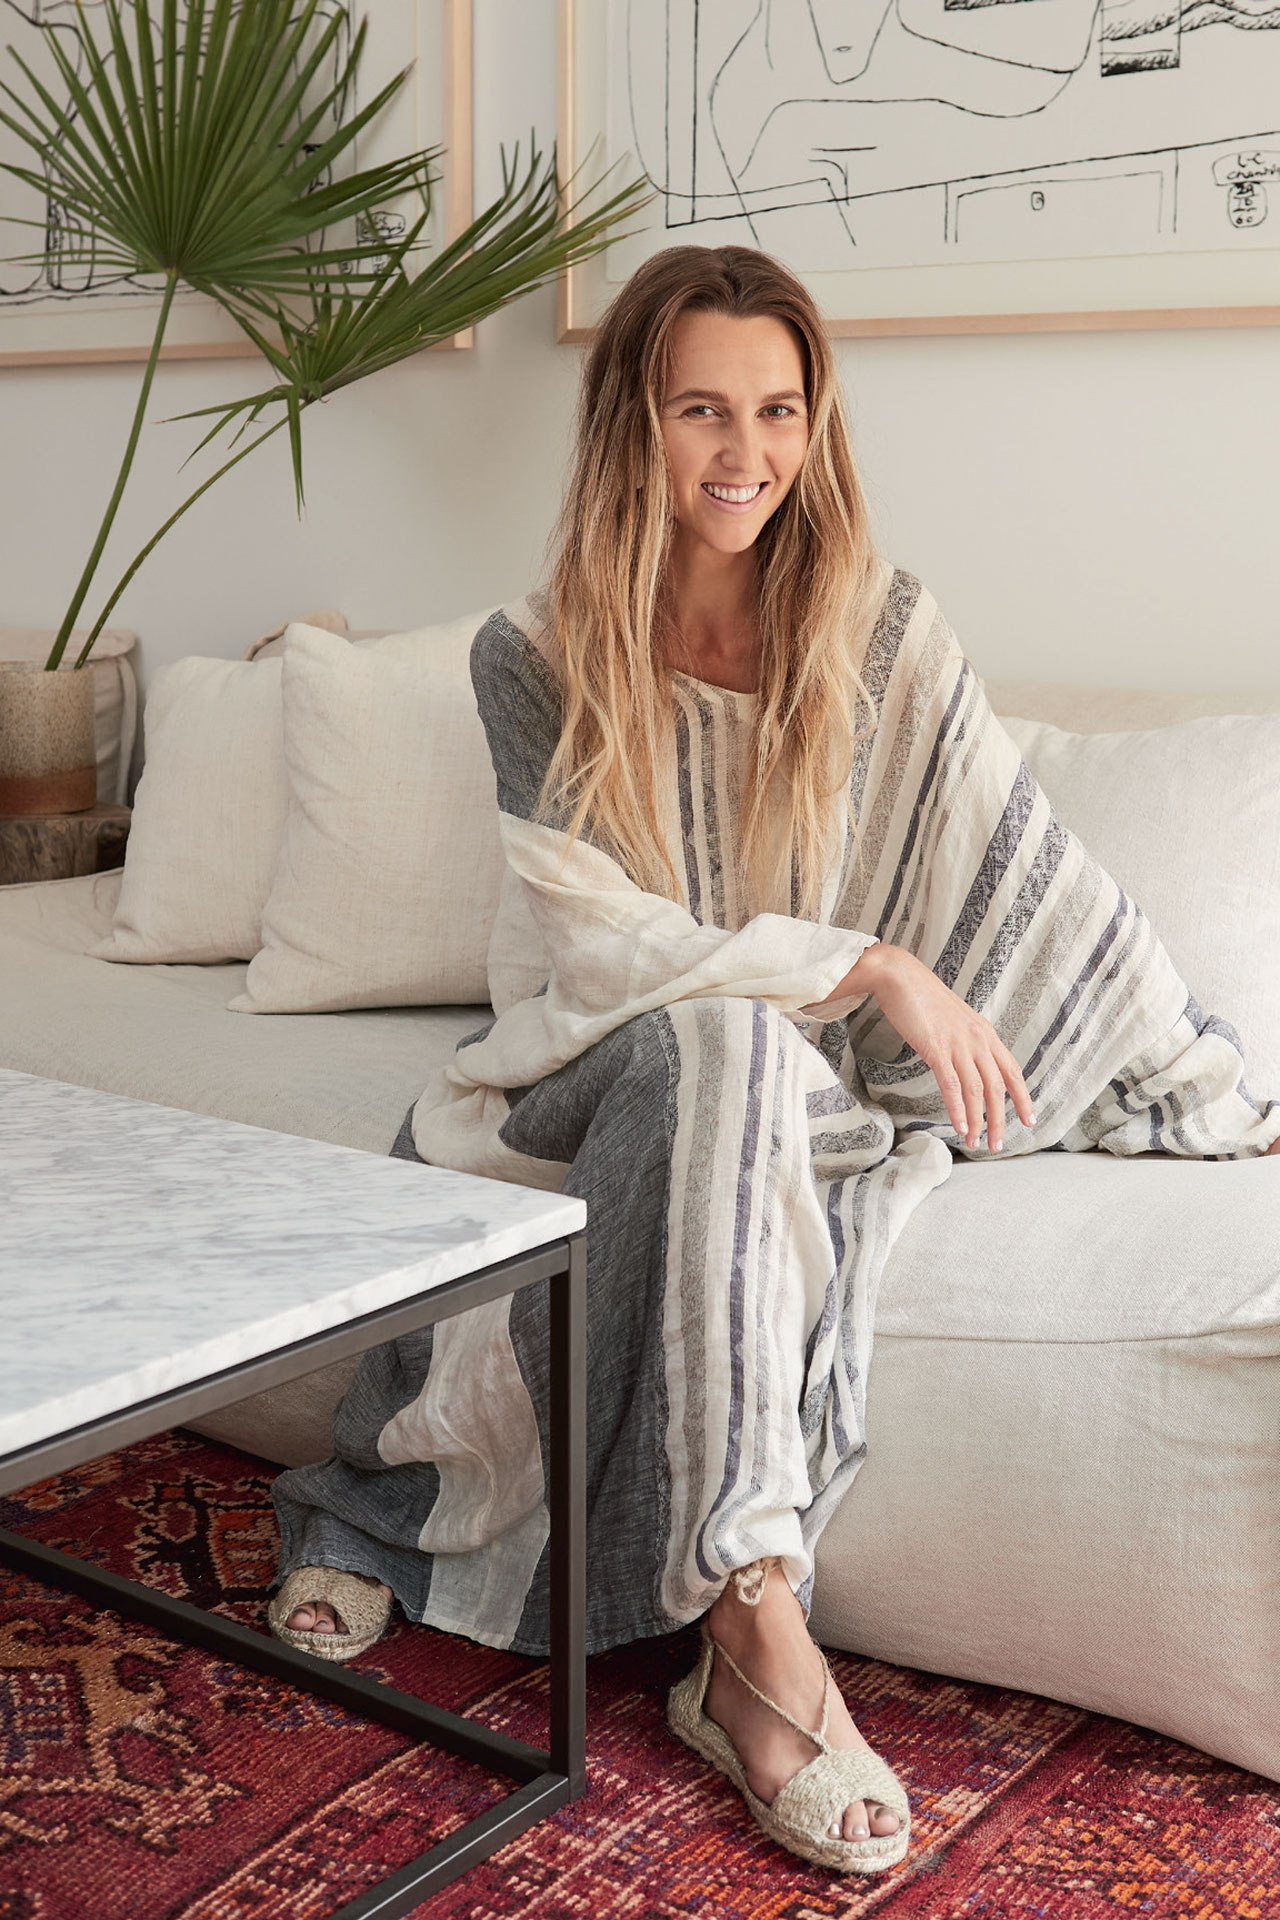 Emma Crowther Goodwin inside Malibu's Surfrider hotel. Image credit: Julie Adams